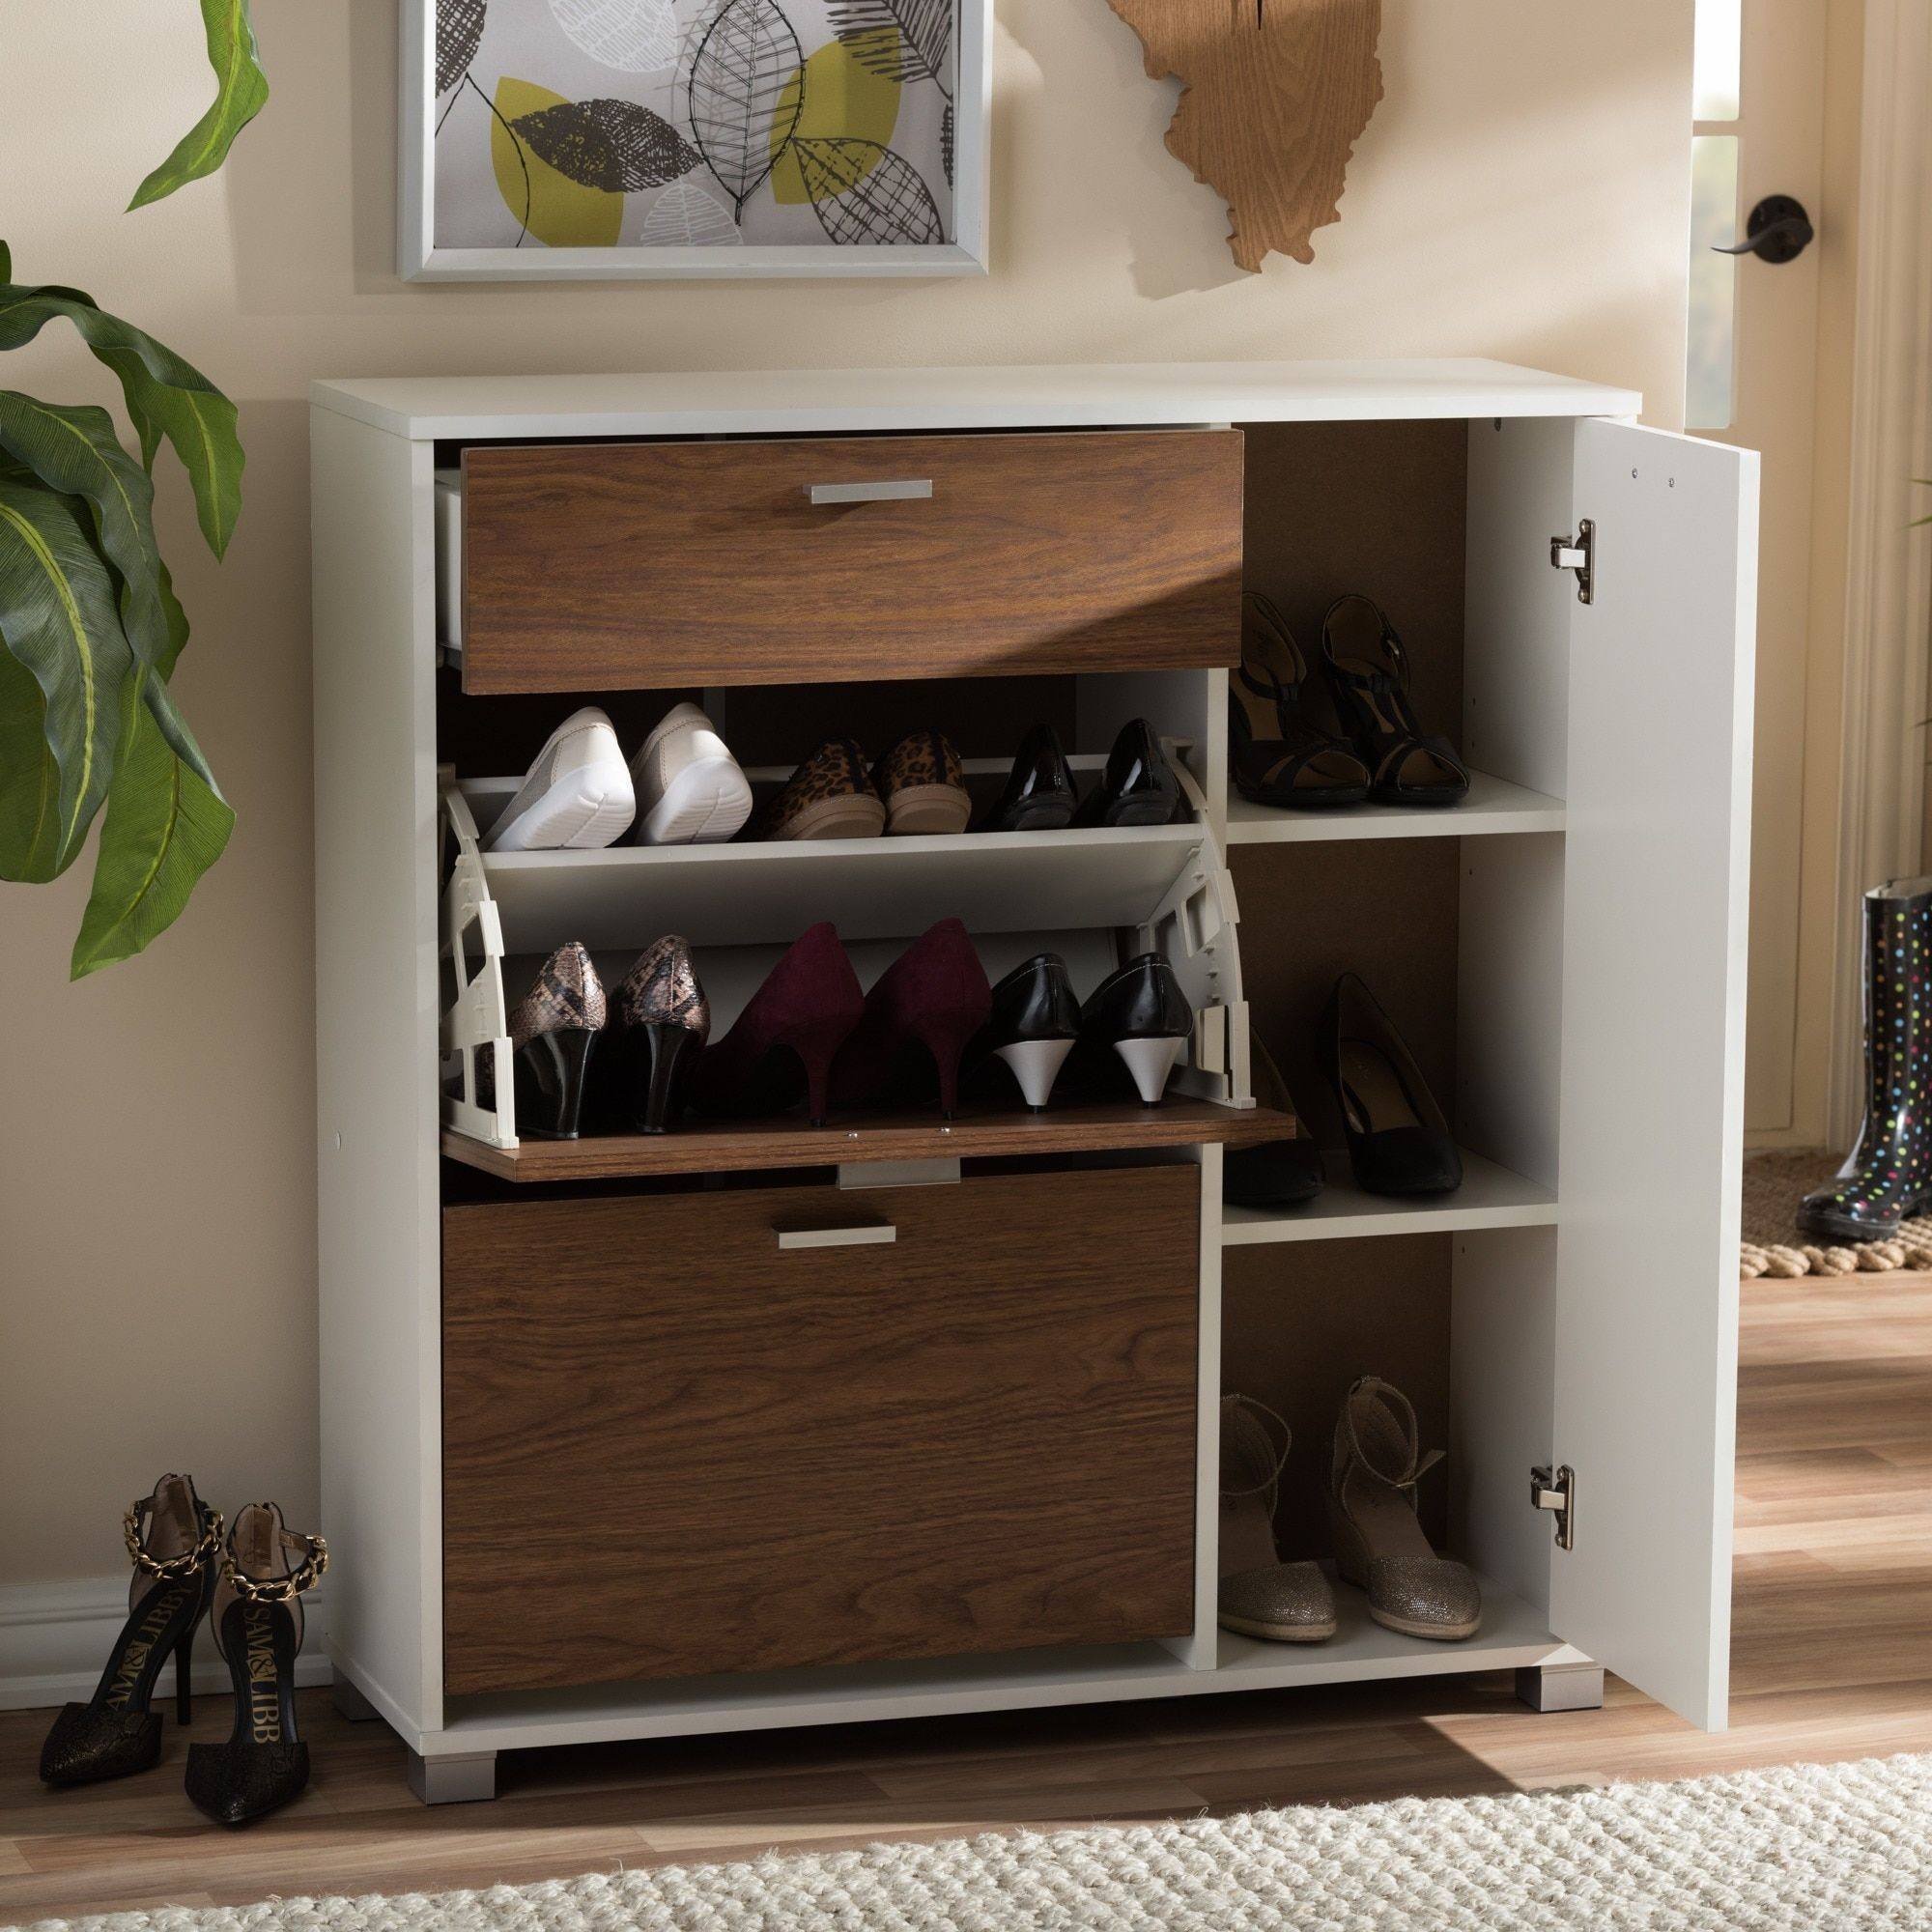 Mudroom Locker Home Goods: Free Shipping on orders over $45 at ...